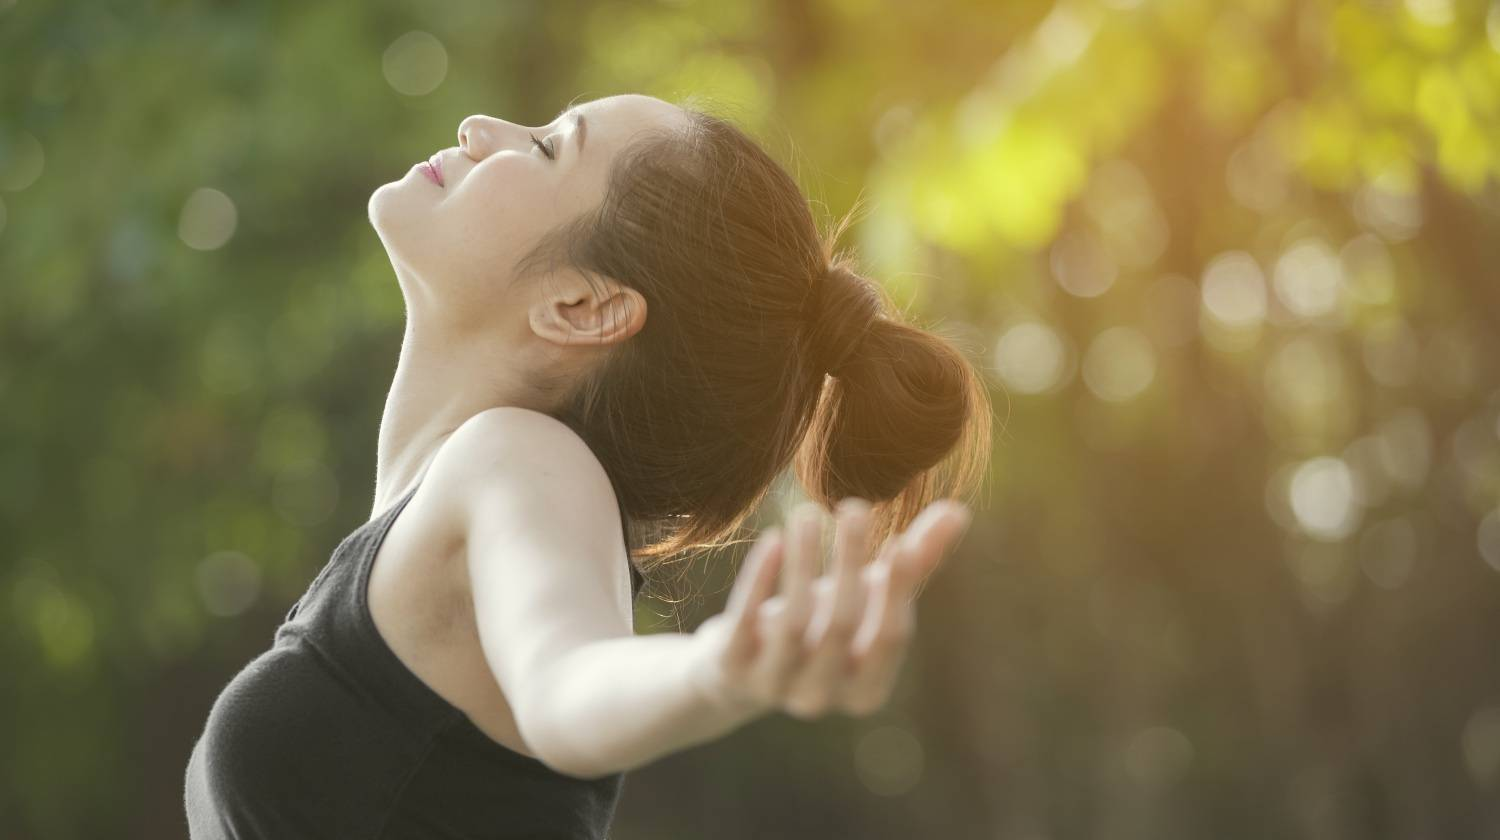 Featured | Woman breathing deeply | Focused Breathing Exercises and Techniques For Better Endurance and Improved Mood